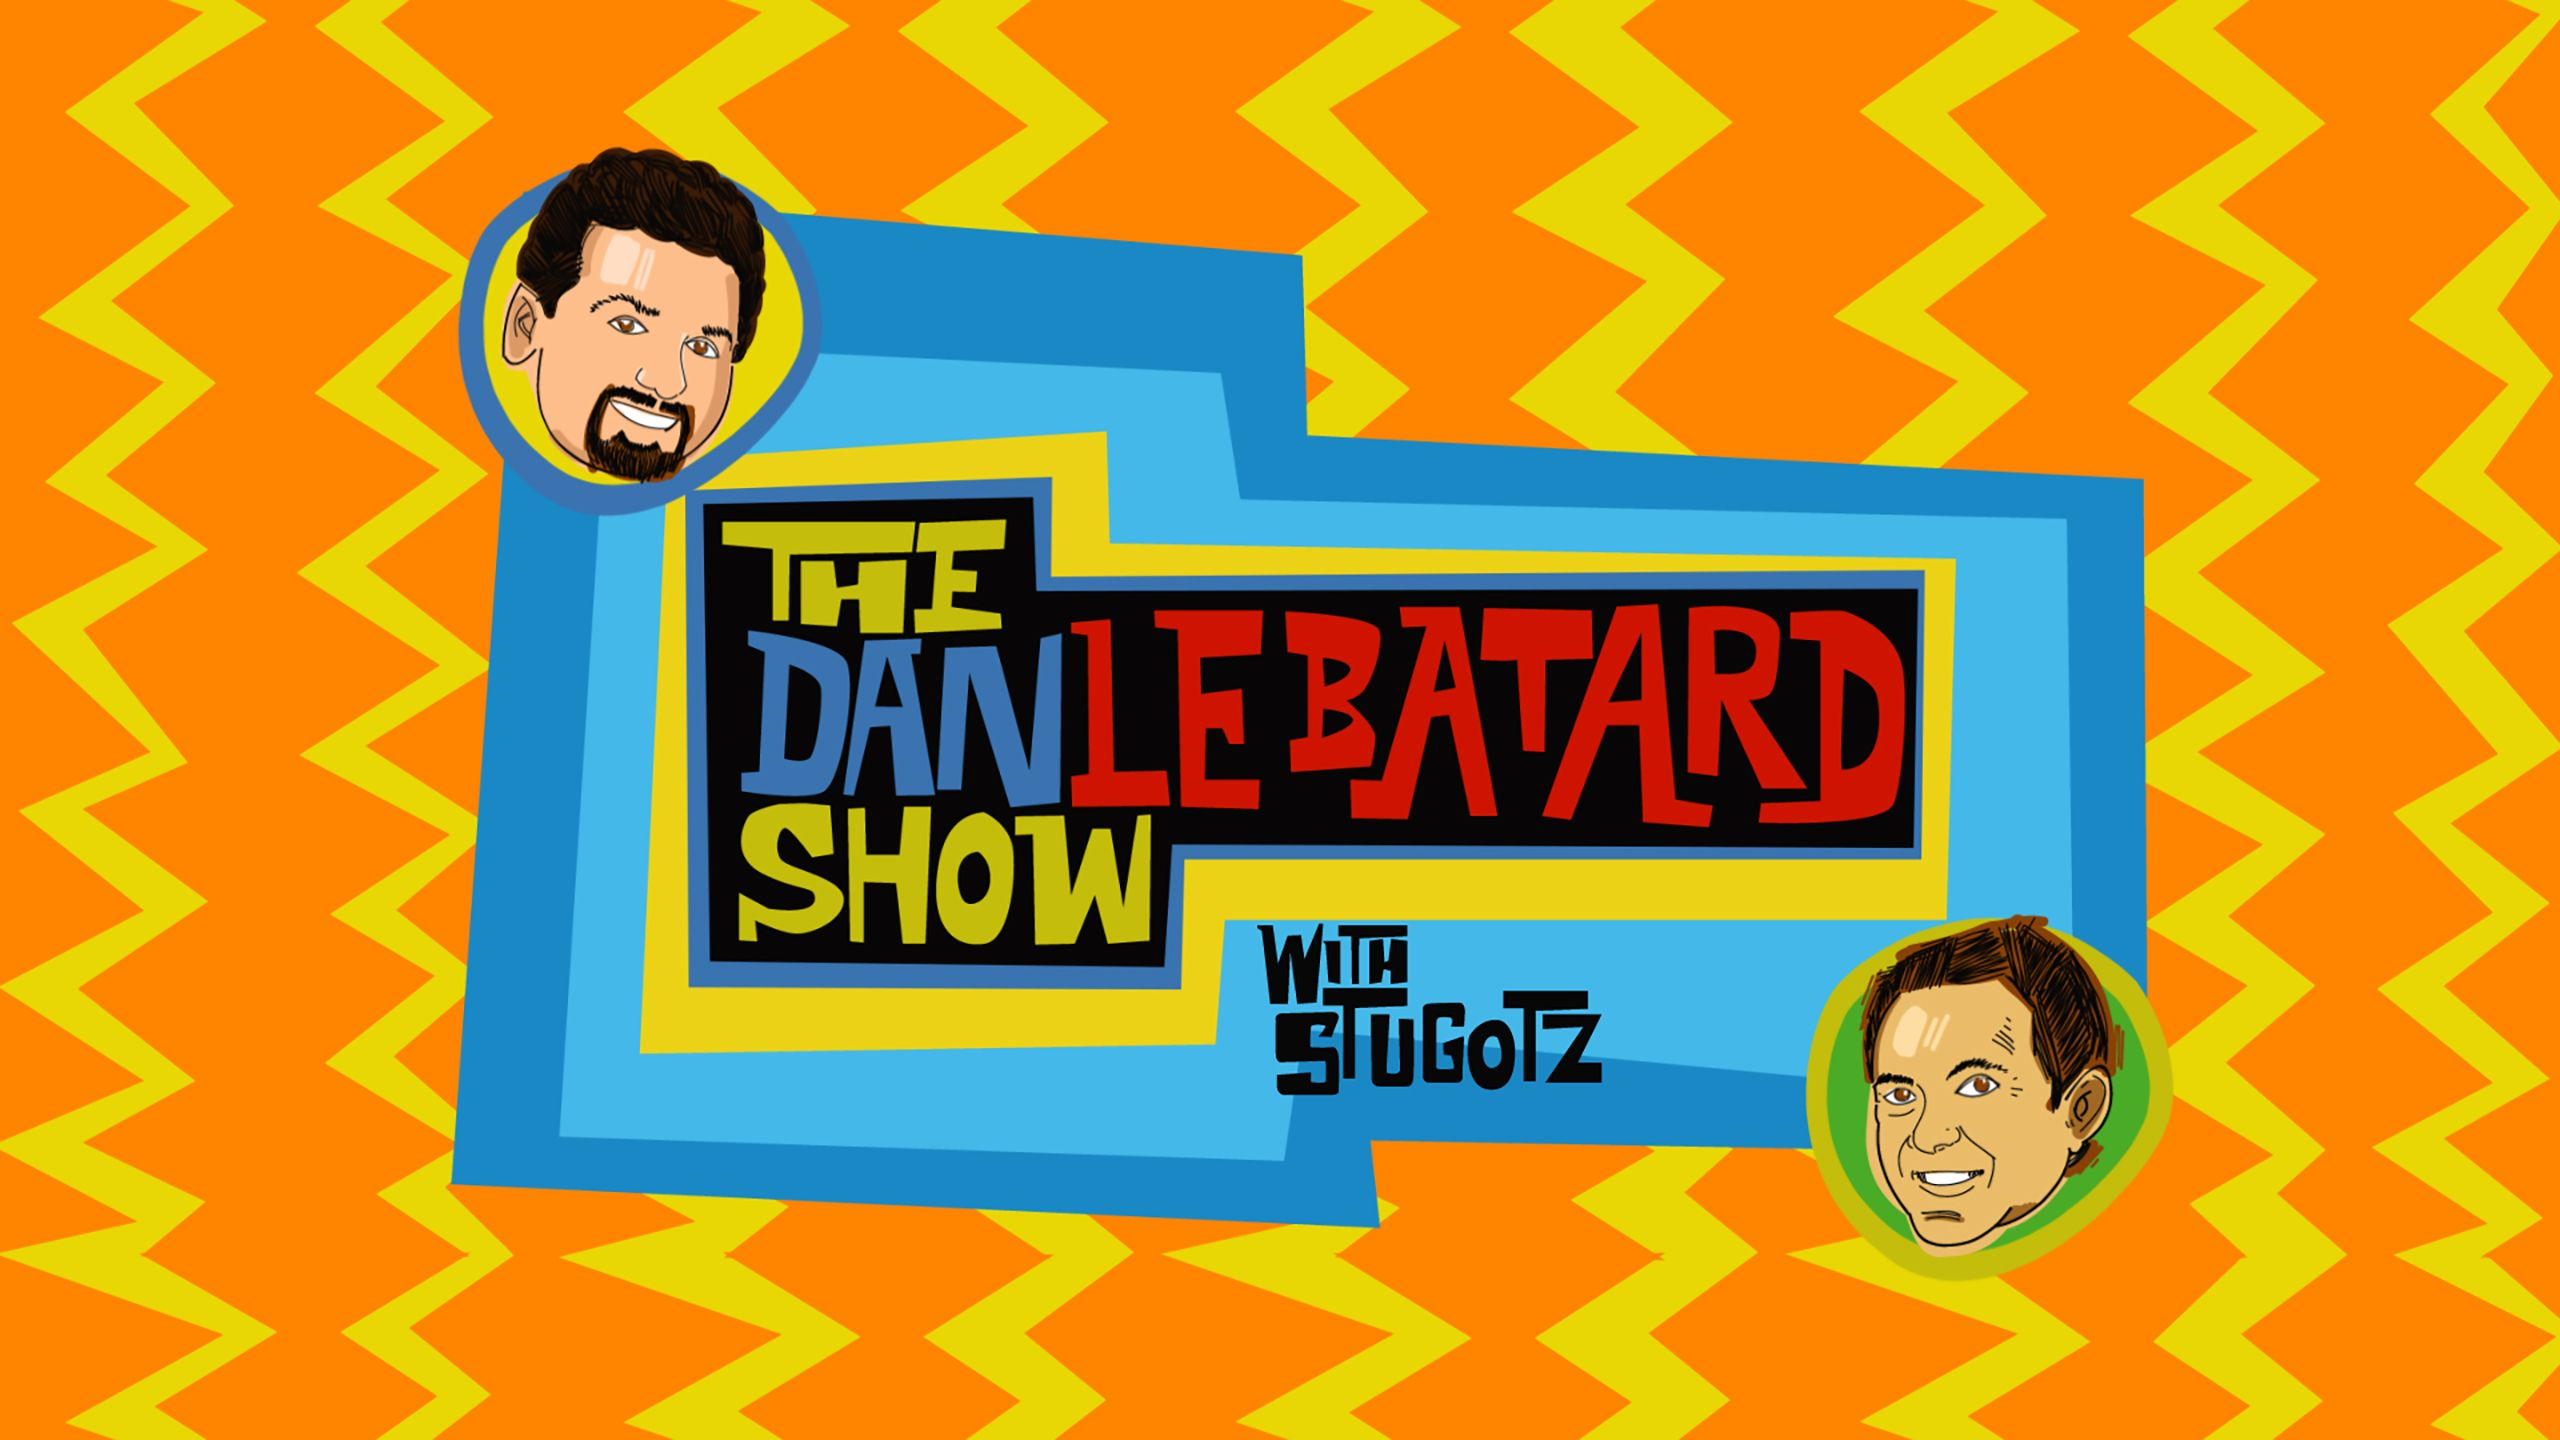 Fri, 12/15 - The Dan Le Batard Show with Stugotz Presented by Progressive